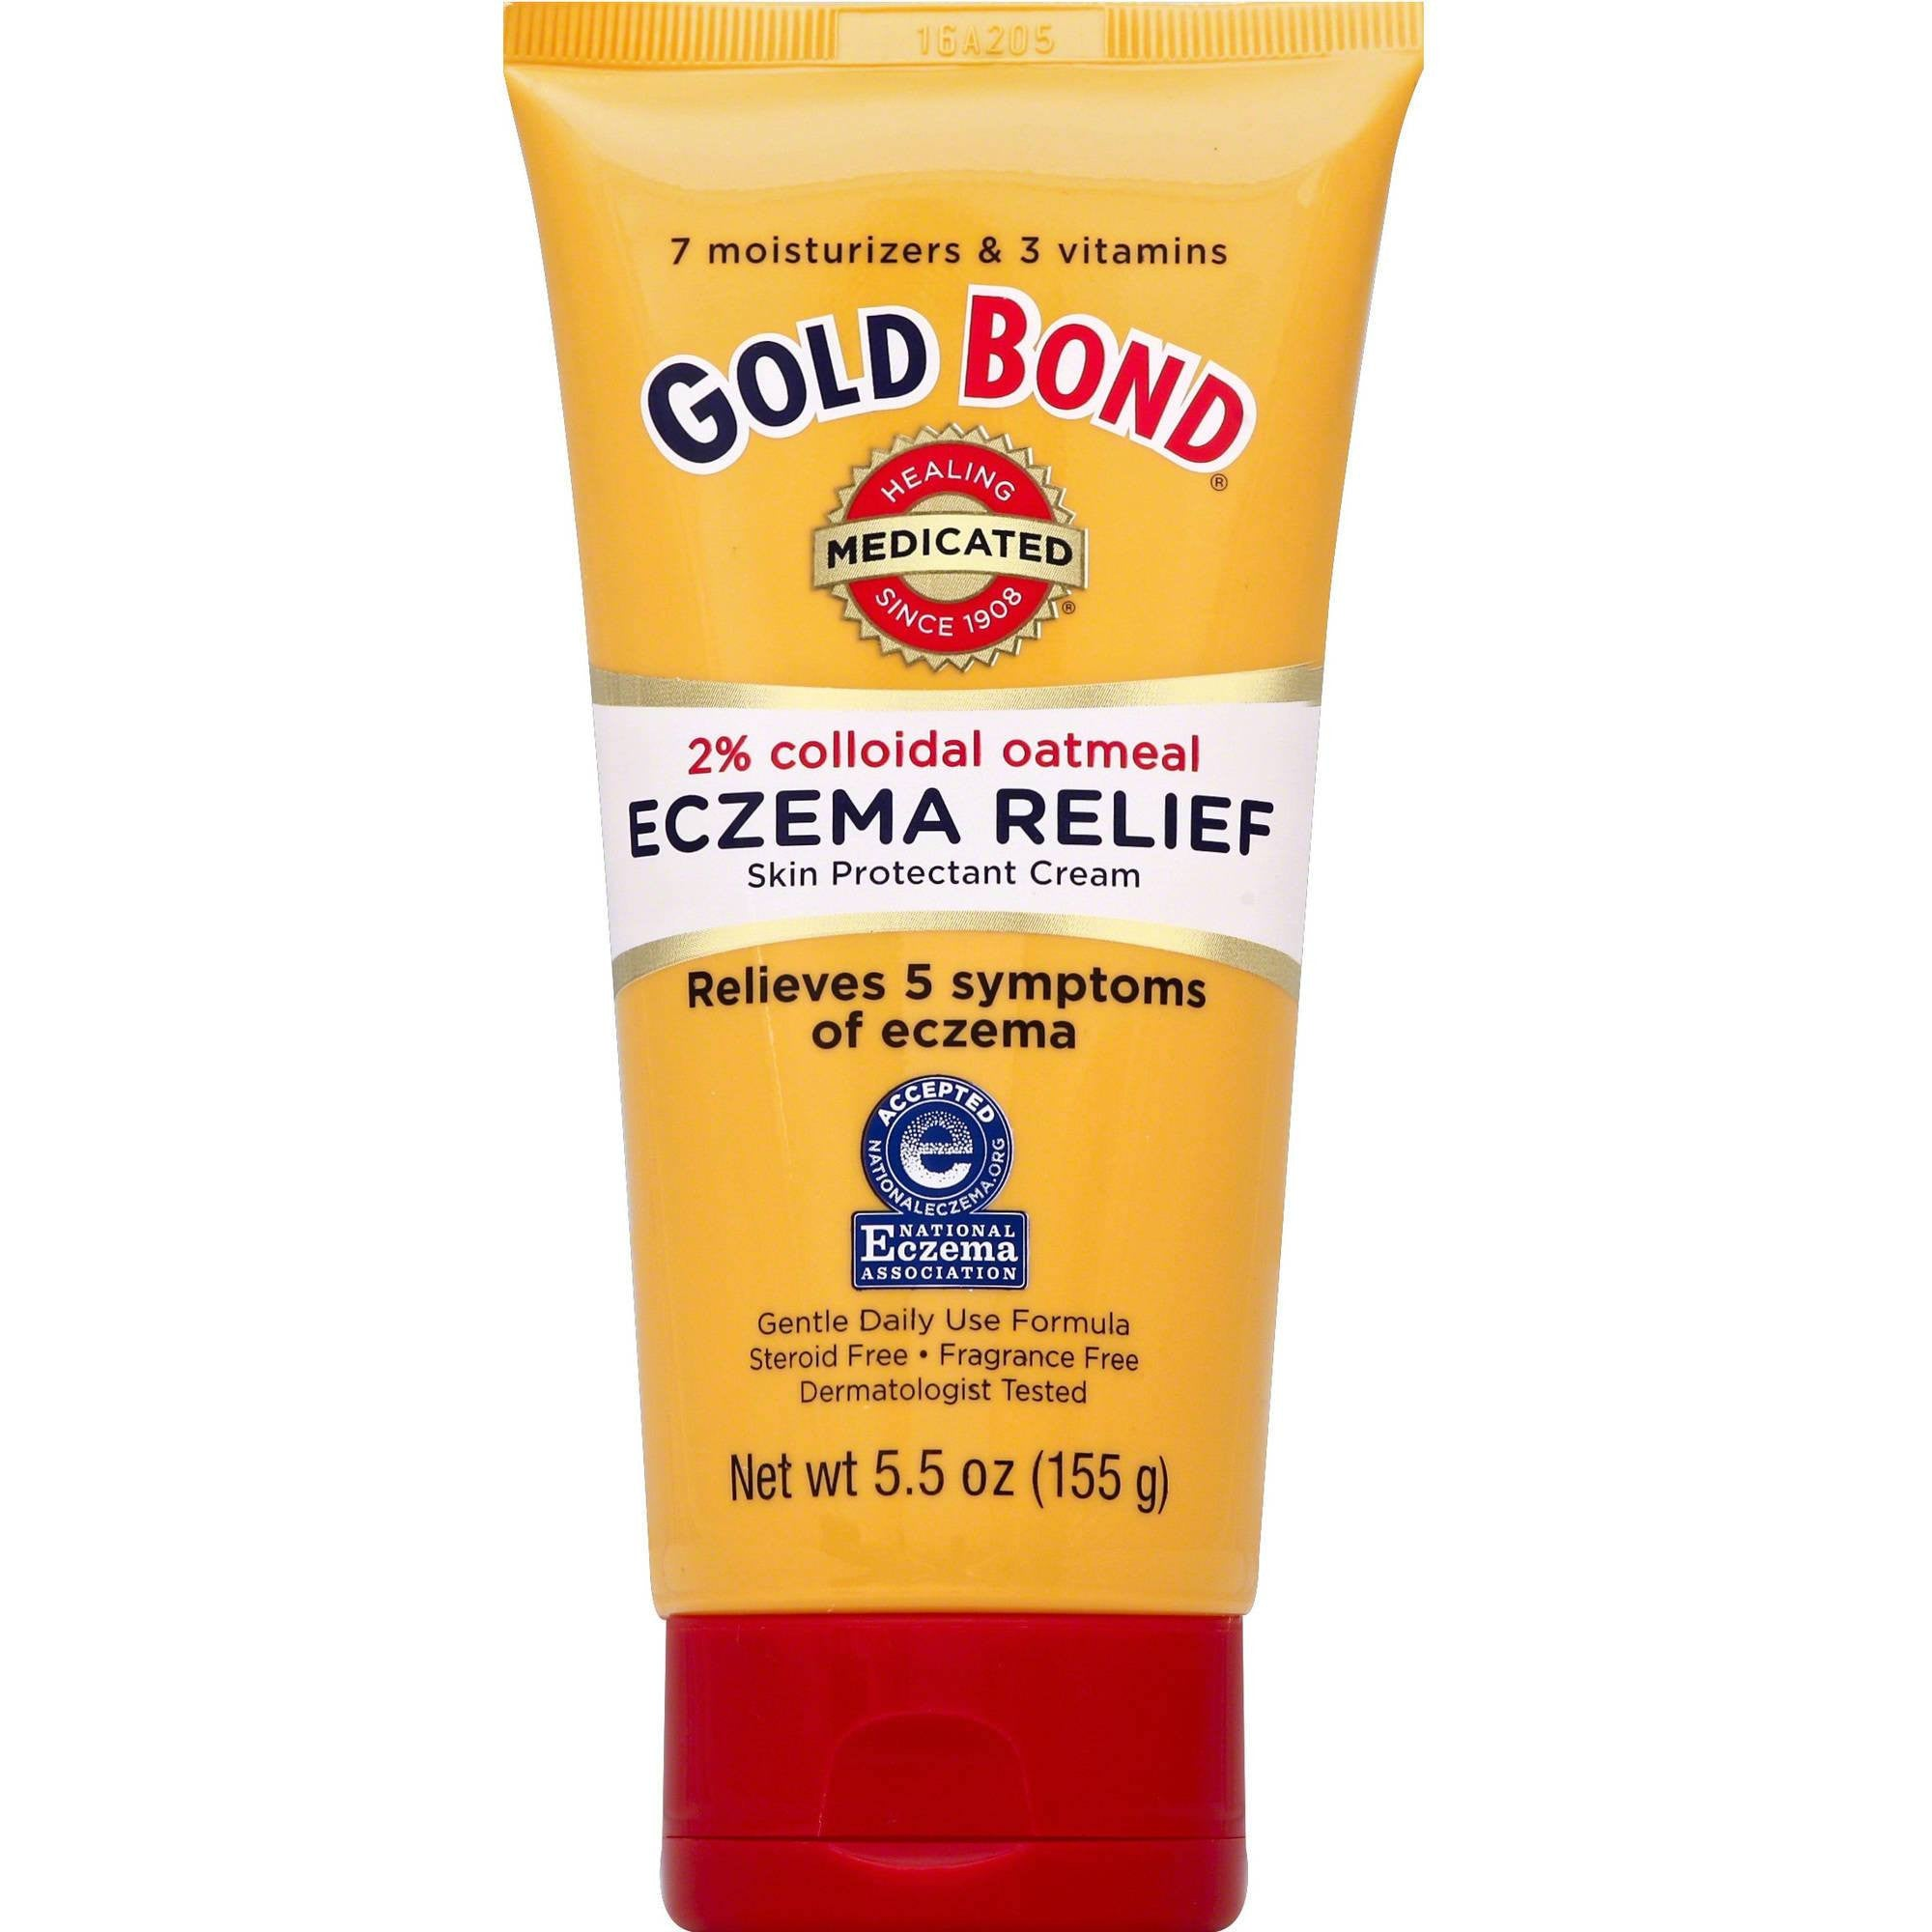 Buy Gold Bond Eczema Relief Skin Protectant Cream online used to treat Eczema Relief - Medical Conditions